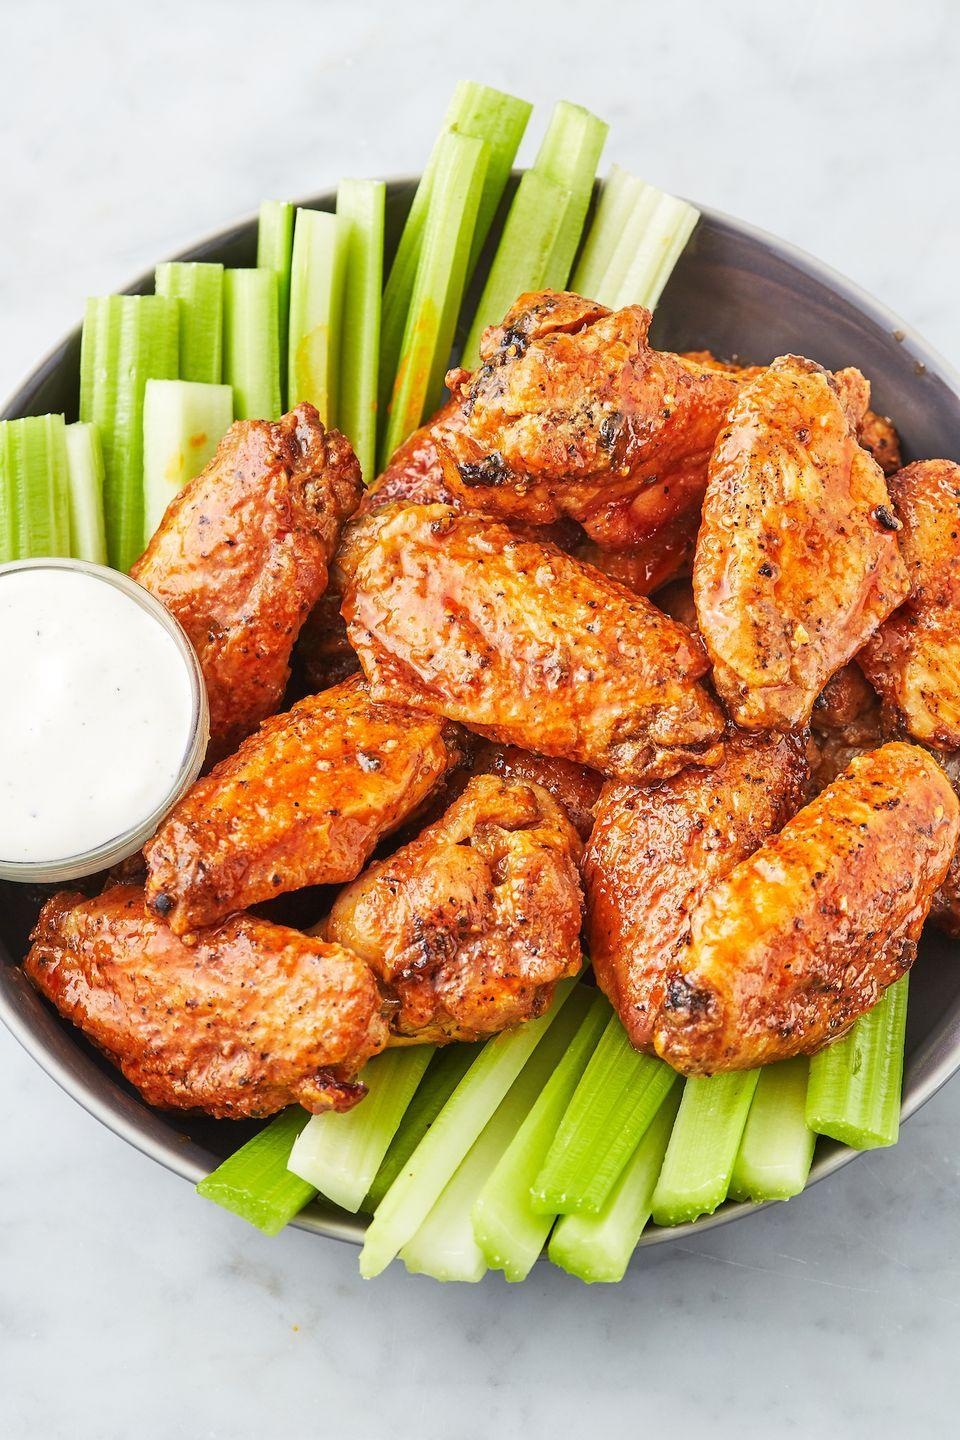 """<p>Need crispy wings stat? Your air fryer makes it almost too easy. </p><p>Get the recipe from <a href=""""https://www.delish.com/cooking/recipe-ideas/a27169627/air-fryer-chicken-wings-recipe/"""" rel=""""nofollow noopener"""" target=""""_blank"""" data-ylk=""""slk:Delish"""" class=""""link rapid-noclick-resp"""">Delish</a>. </p>"""